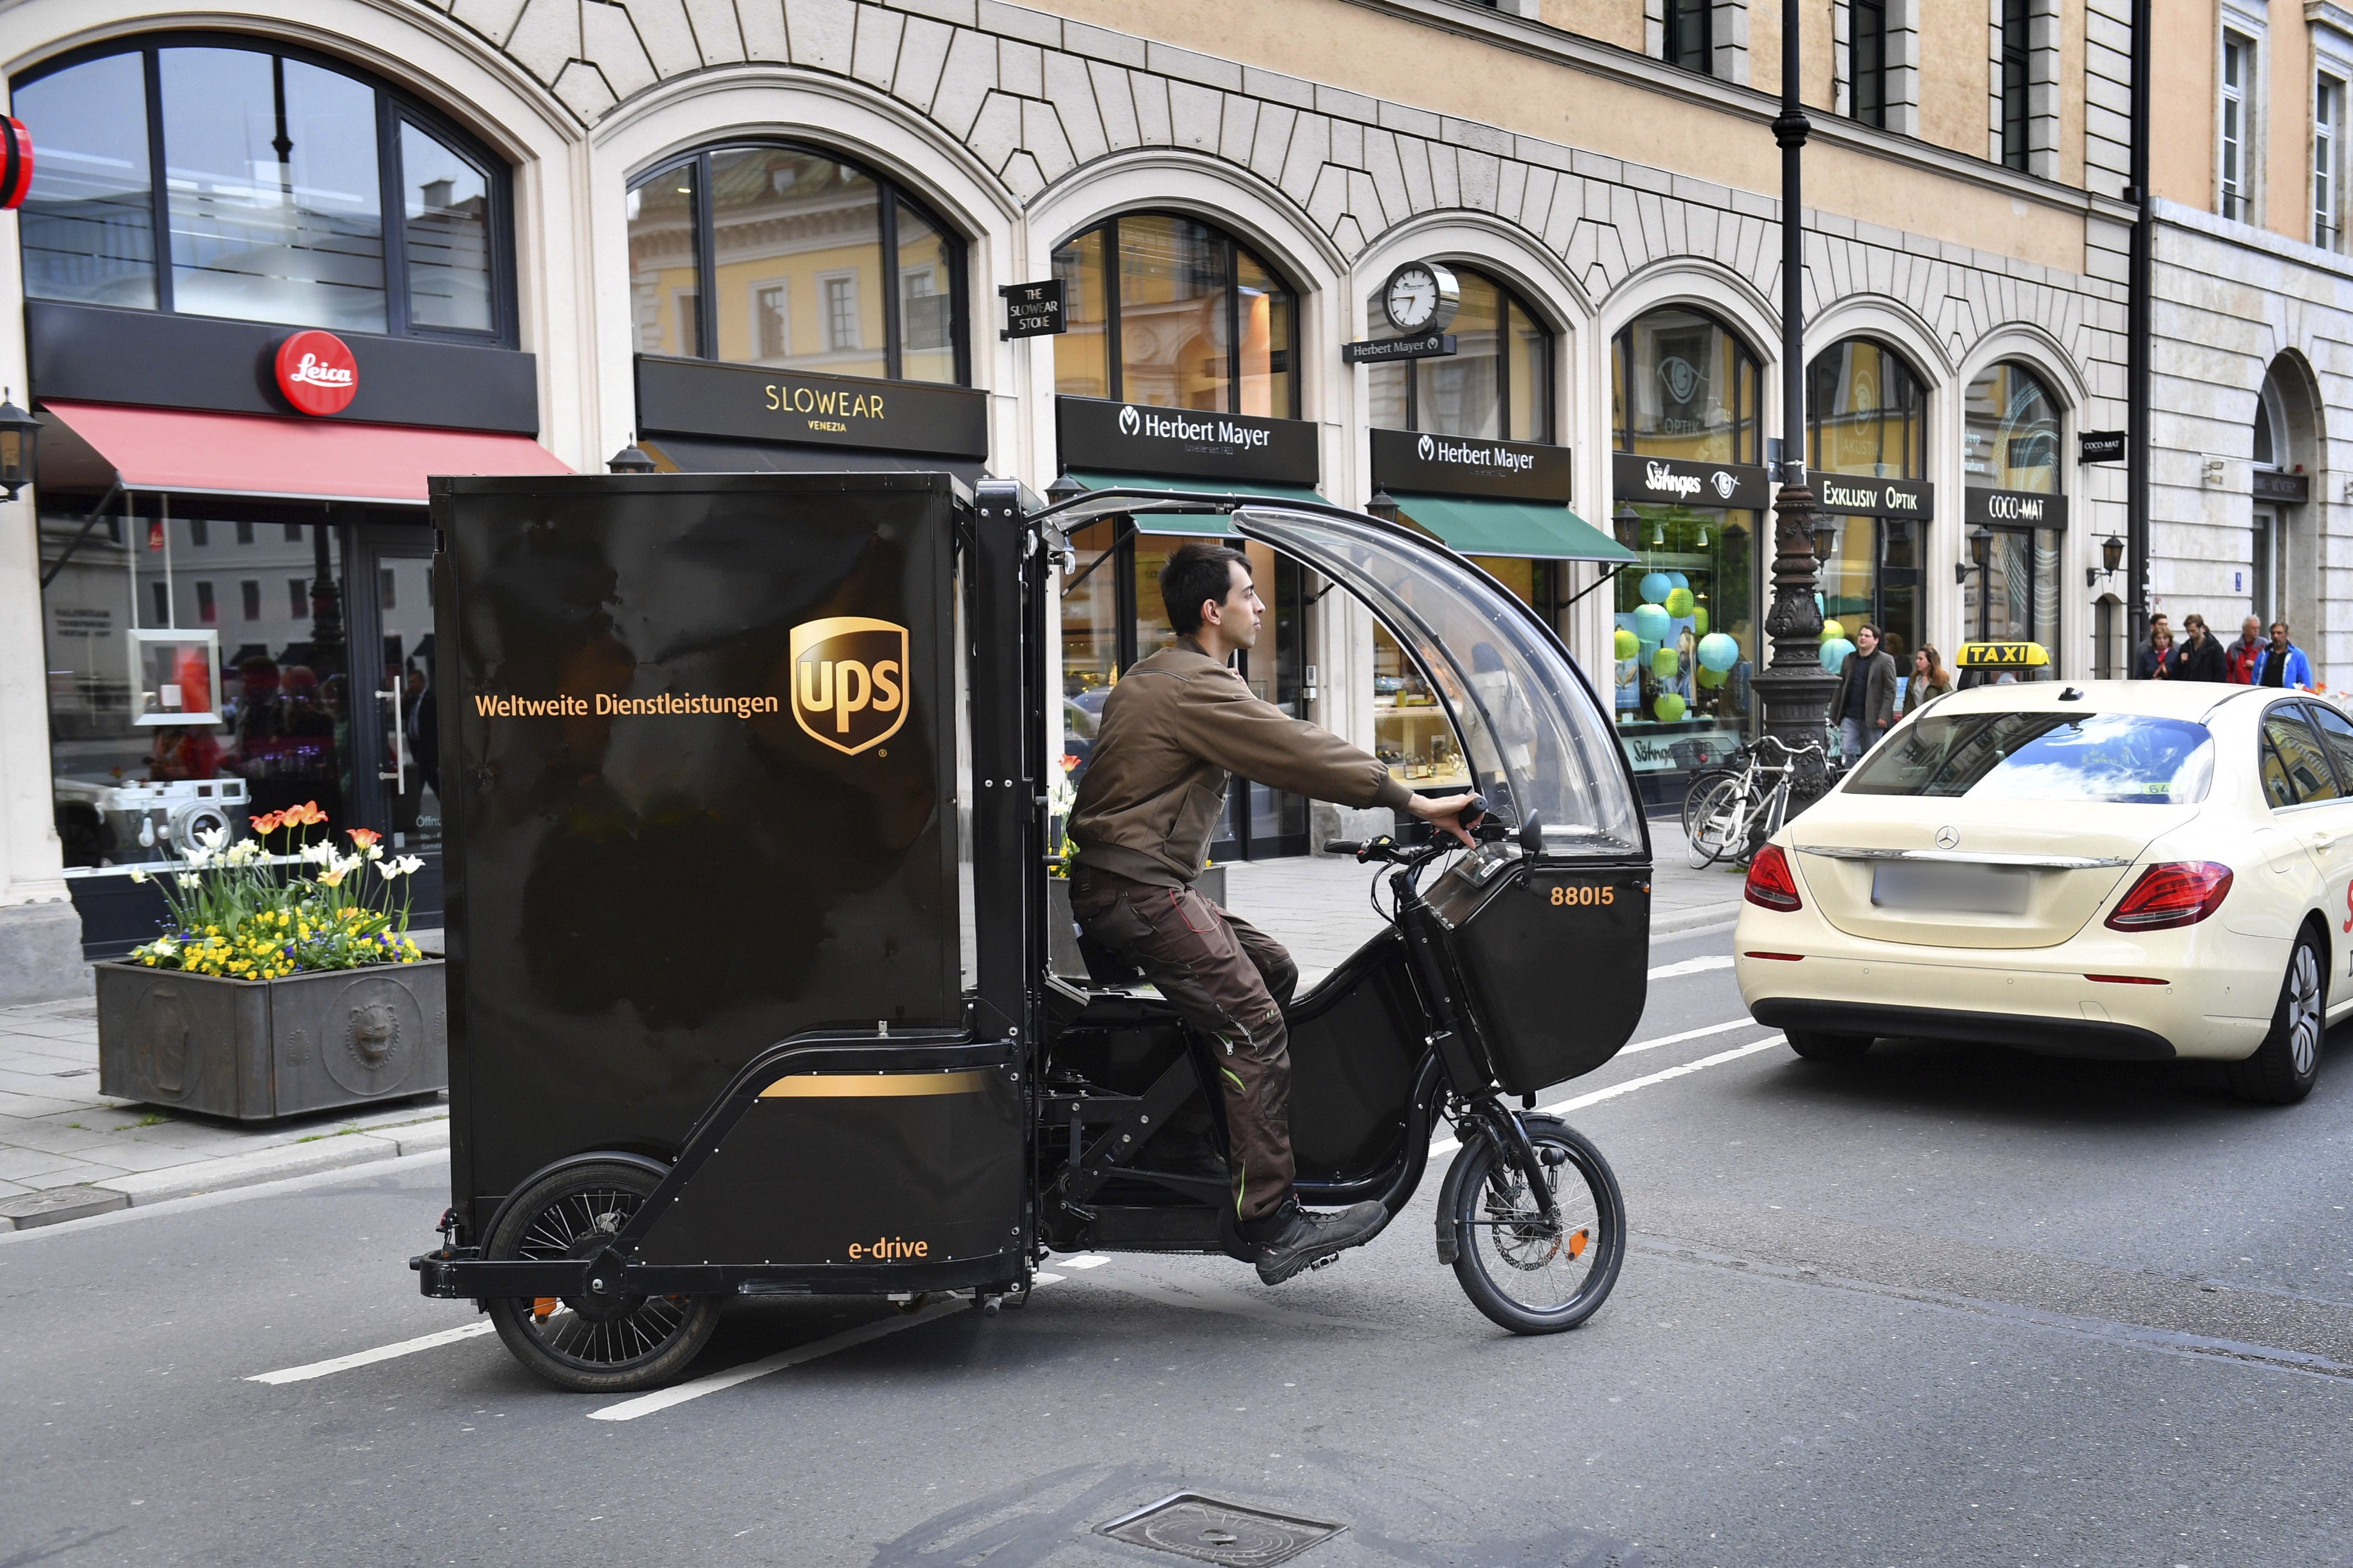 A photograph of a UPS electric delivery freight bike on the streets of Munich, Germany.